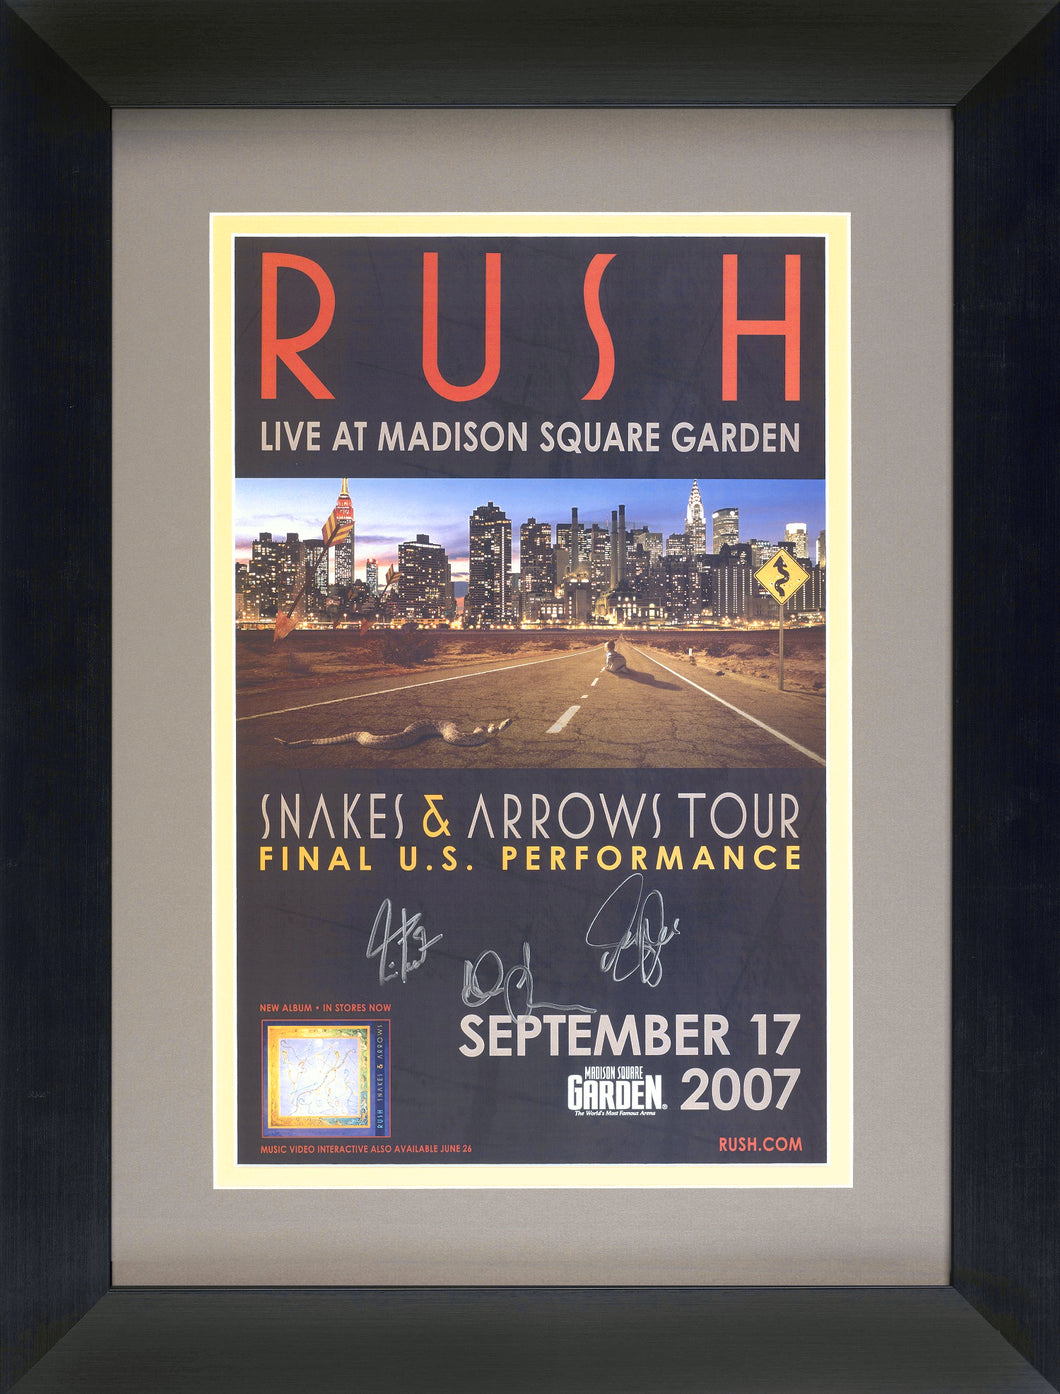 ORIGINAL SNAKES & ARROWS TOUR POSTER - HAND-SIGNED BY RUSH